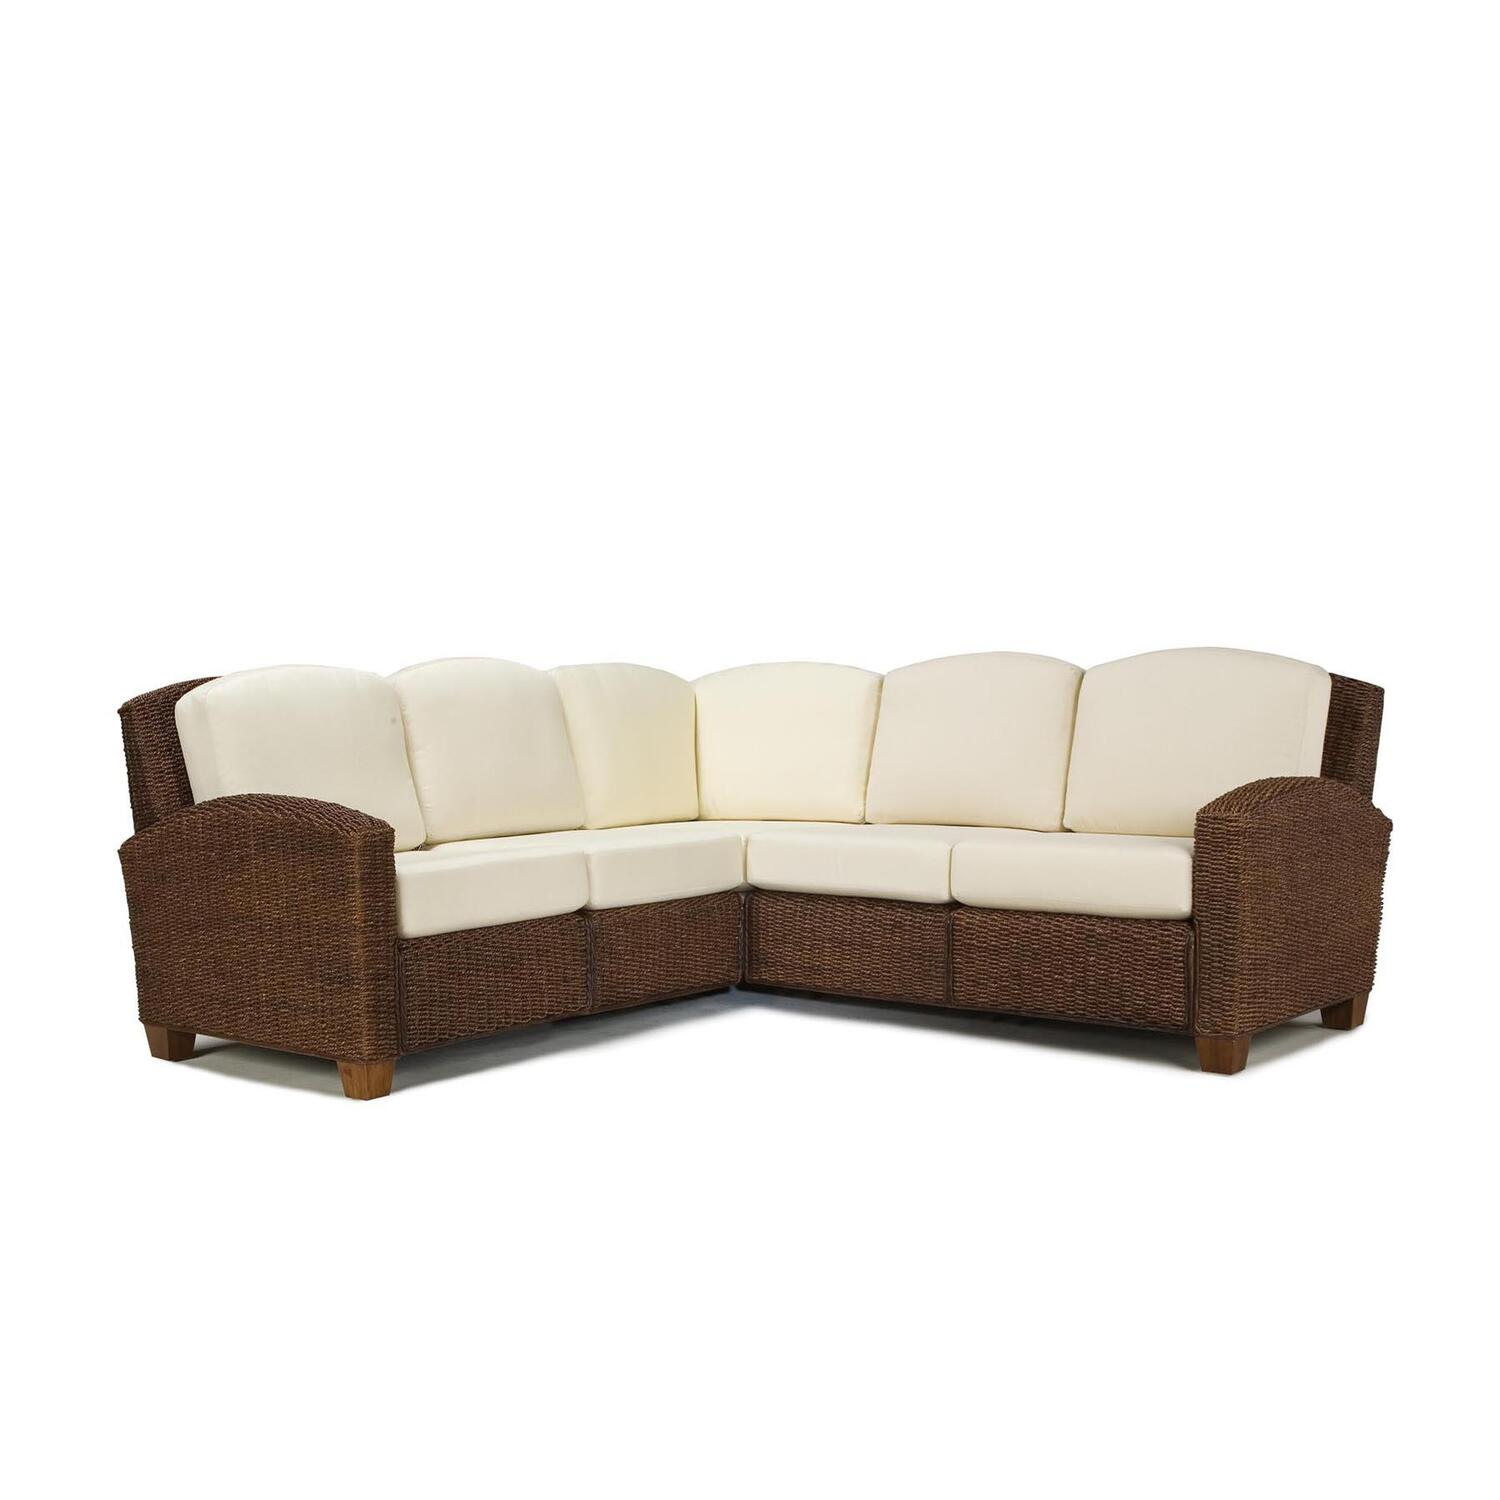 l shaped sectional couch covers images